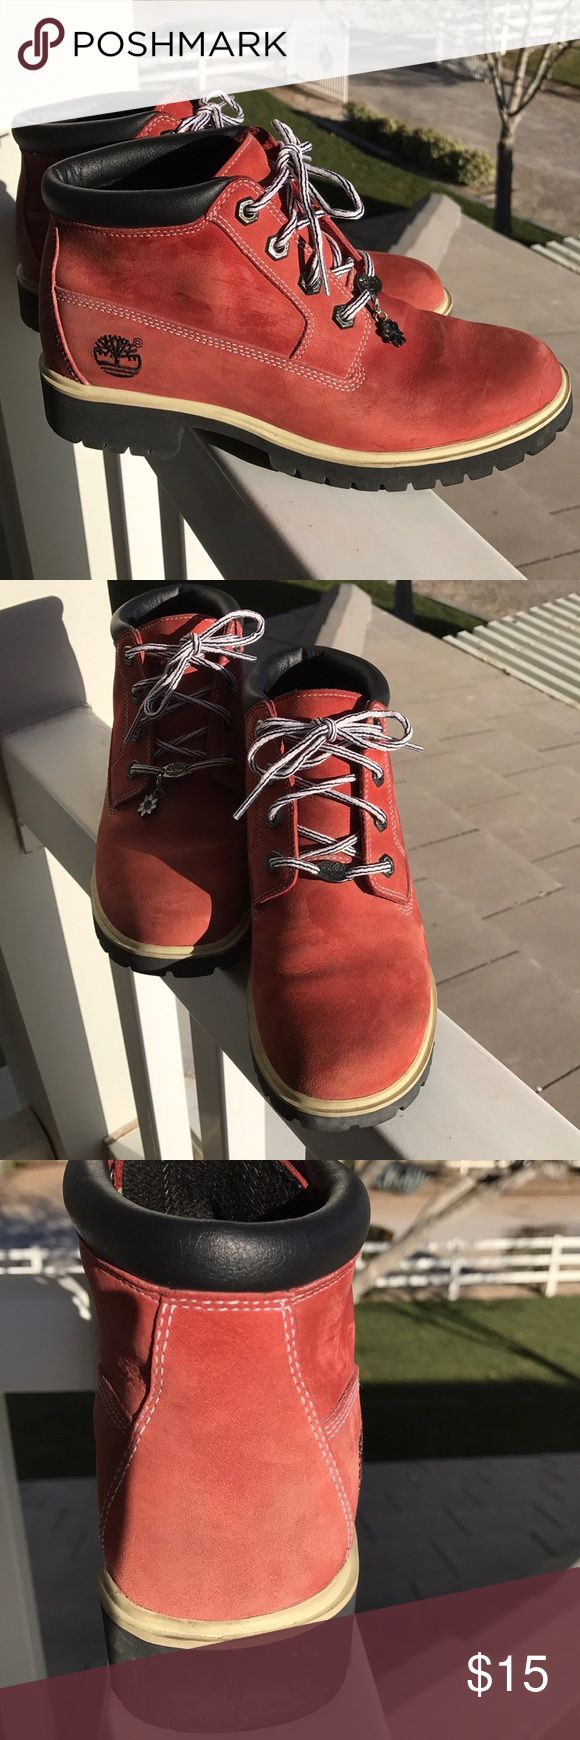 Ladies Timberland Boots 🌸 Super cute, comfortable, 💦 waterproof boots. 🌸 priced to move on out of the closet.  These are not really red, but not orange. Kind of a burnt orange. Timberland Shoes Ankle Boots & Booties